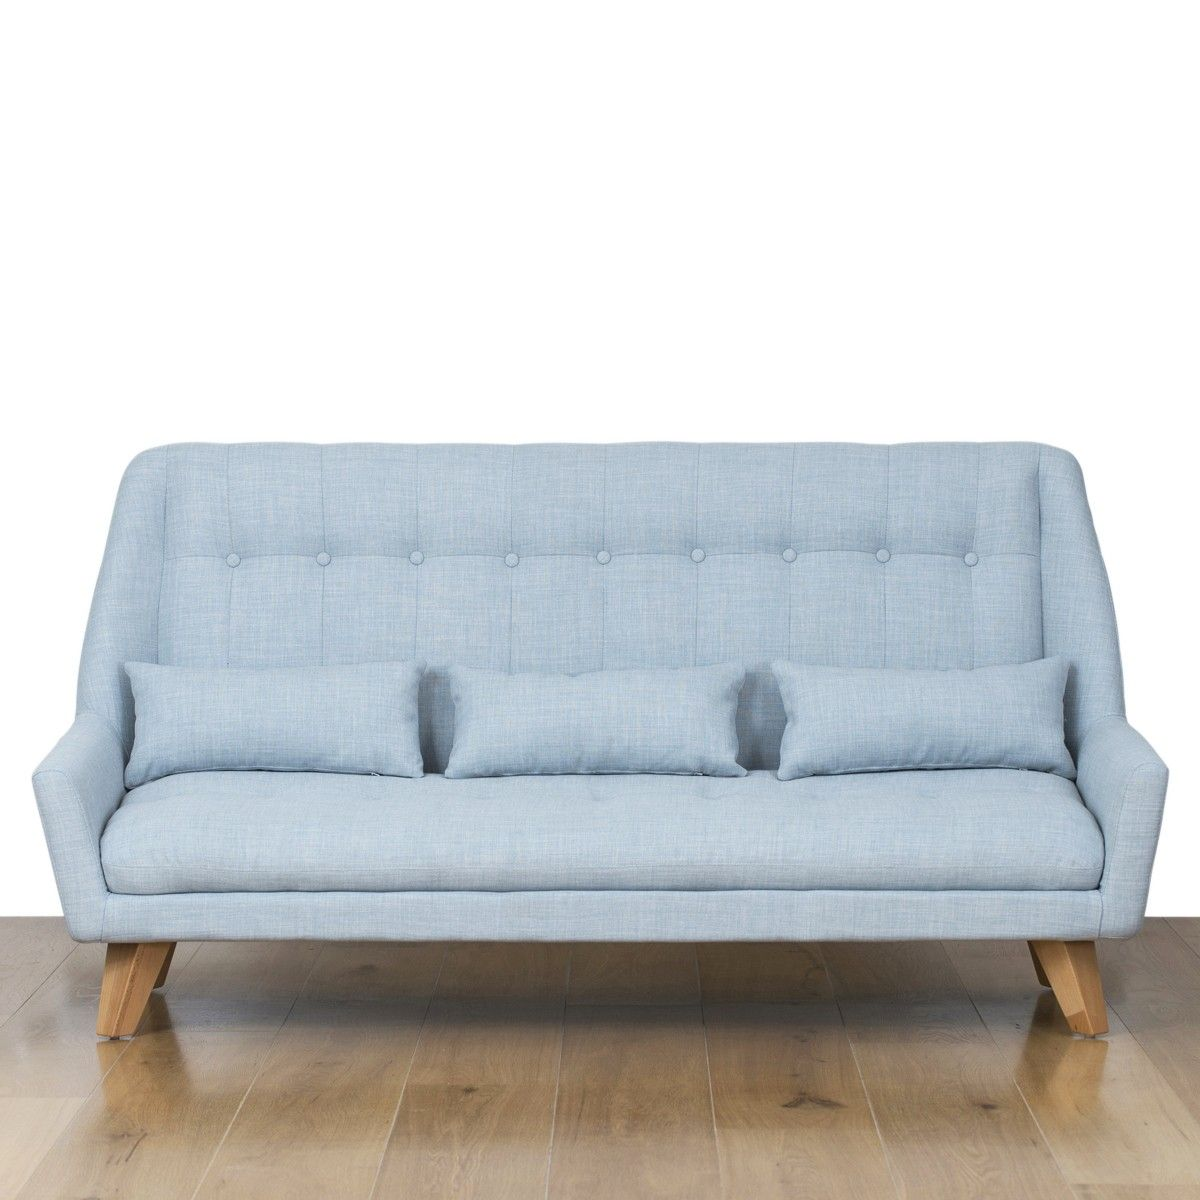 Audrey Sofa ... Retro Furniture From Www.retrojan.com.au